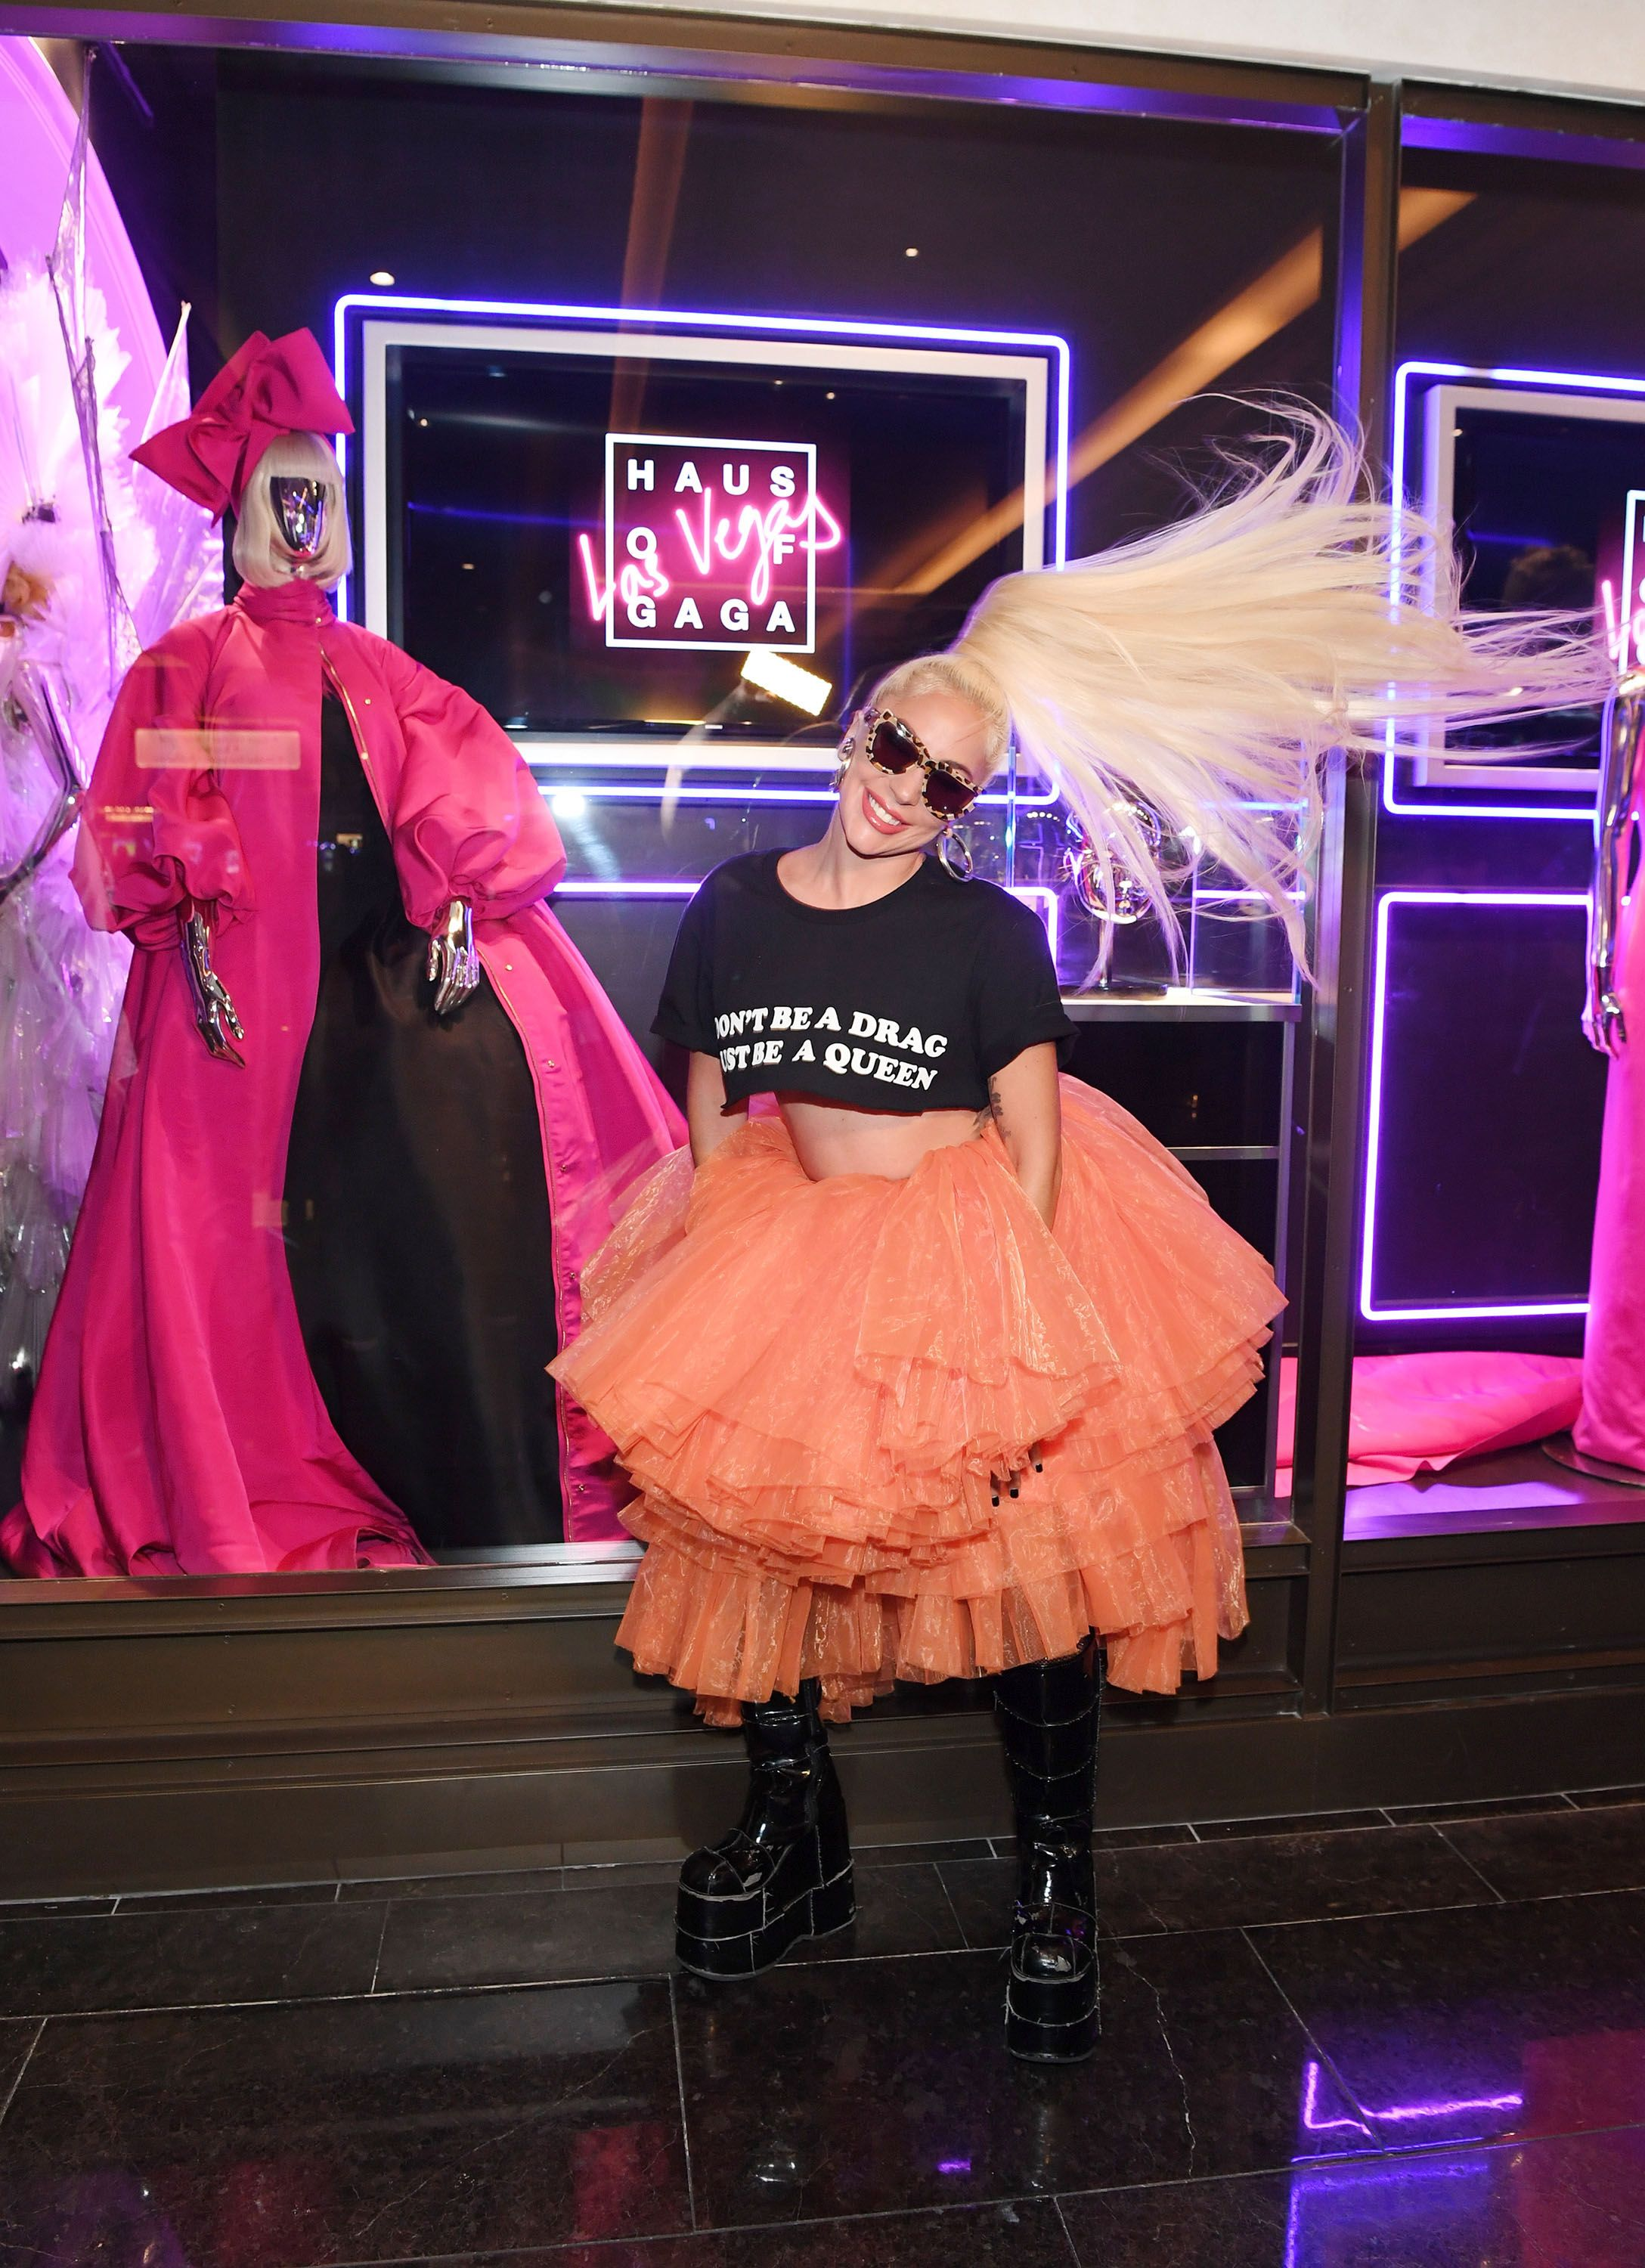 9968c8c4e0b6 Lady Gaga Wears a Tutu and Combat Boots at Her 'Haus of Gaga' Exhibition in  Las Vegas